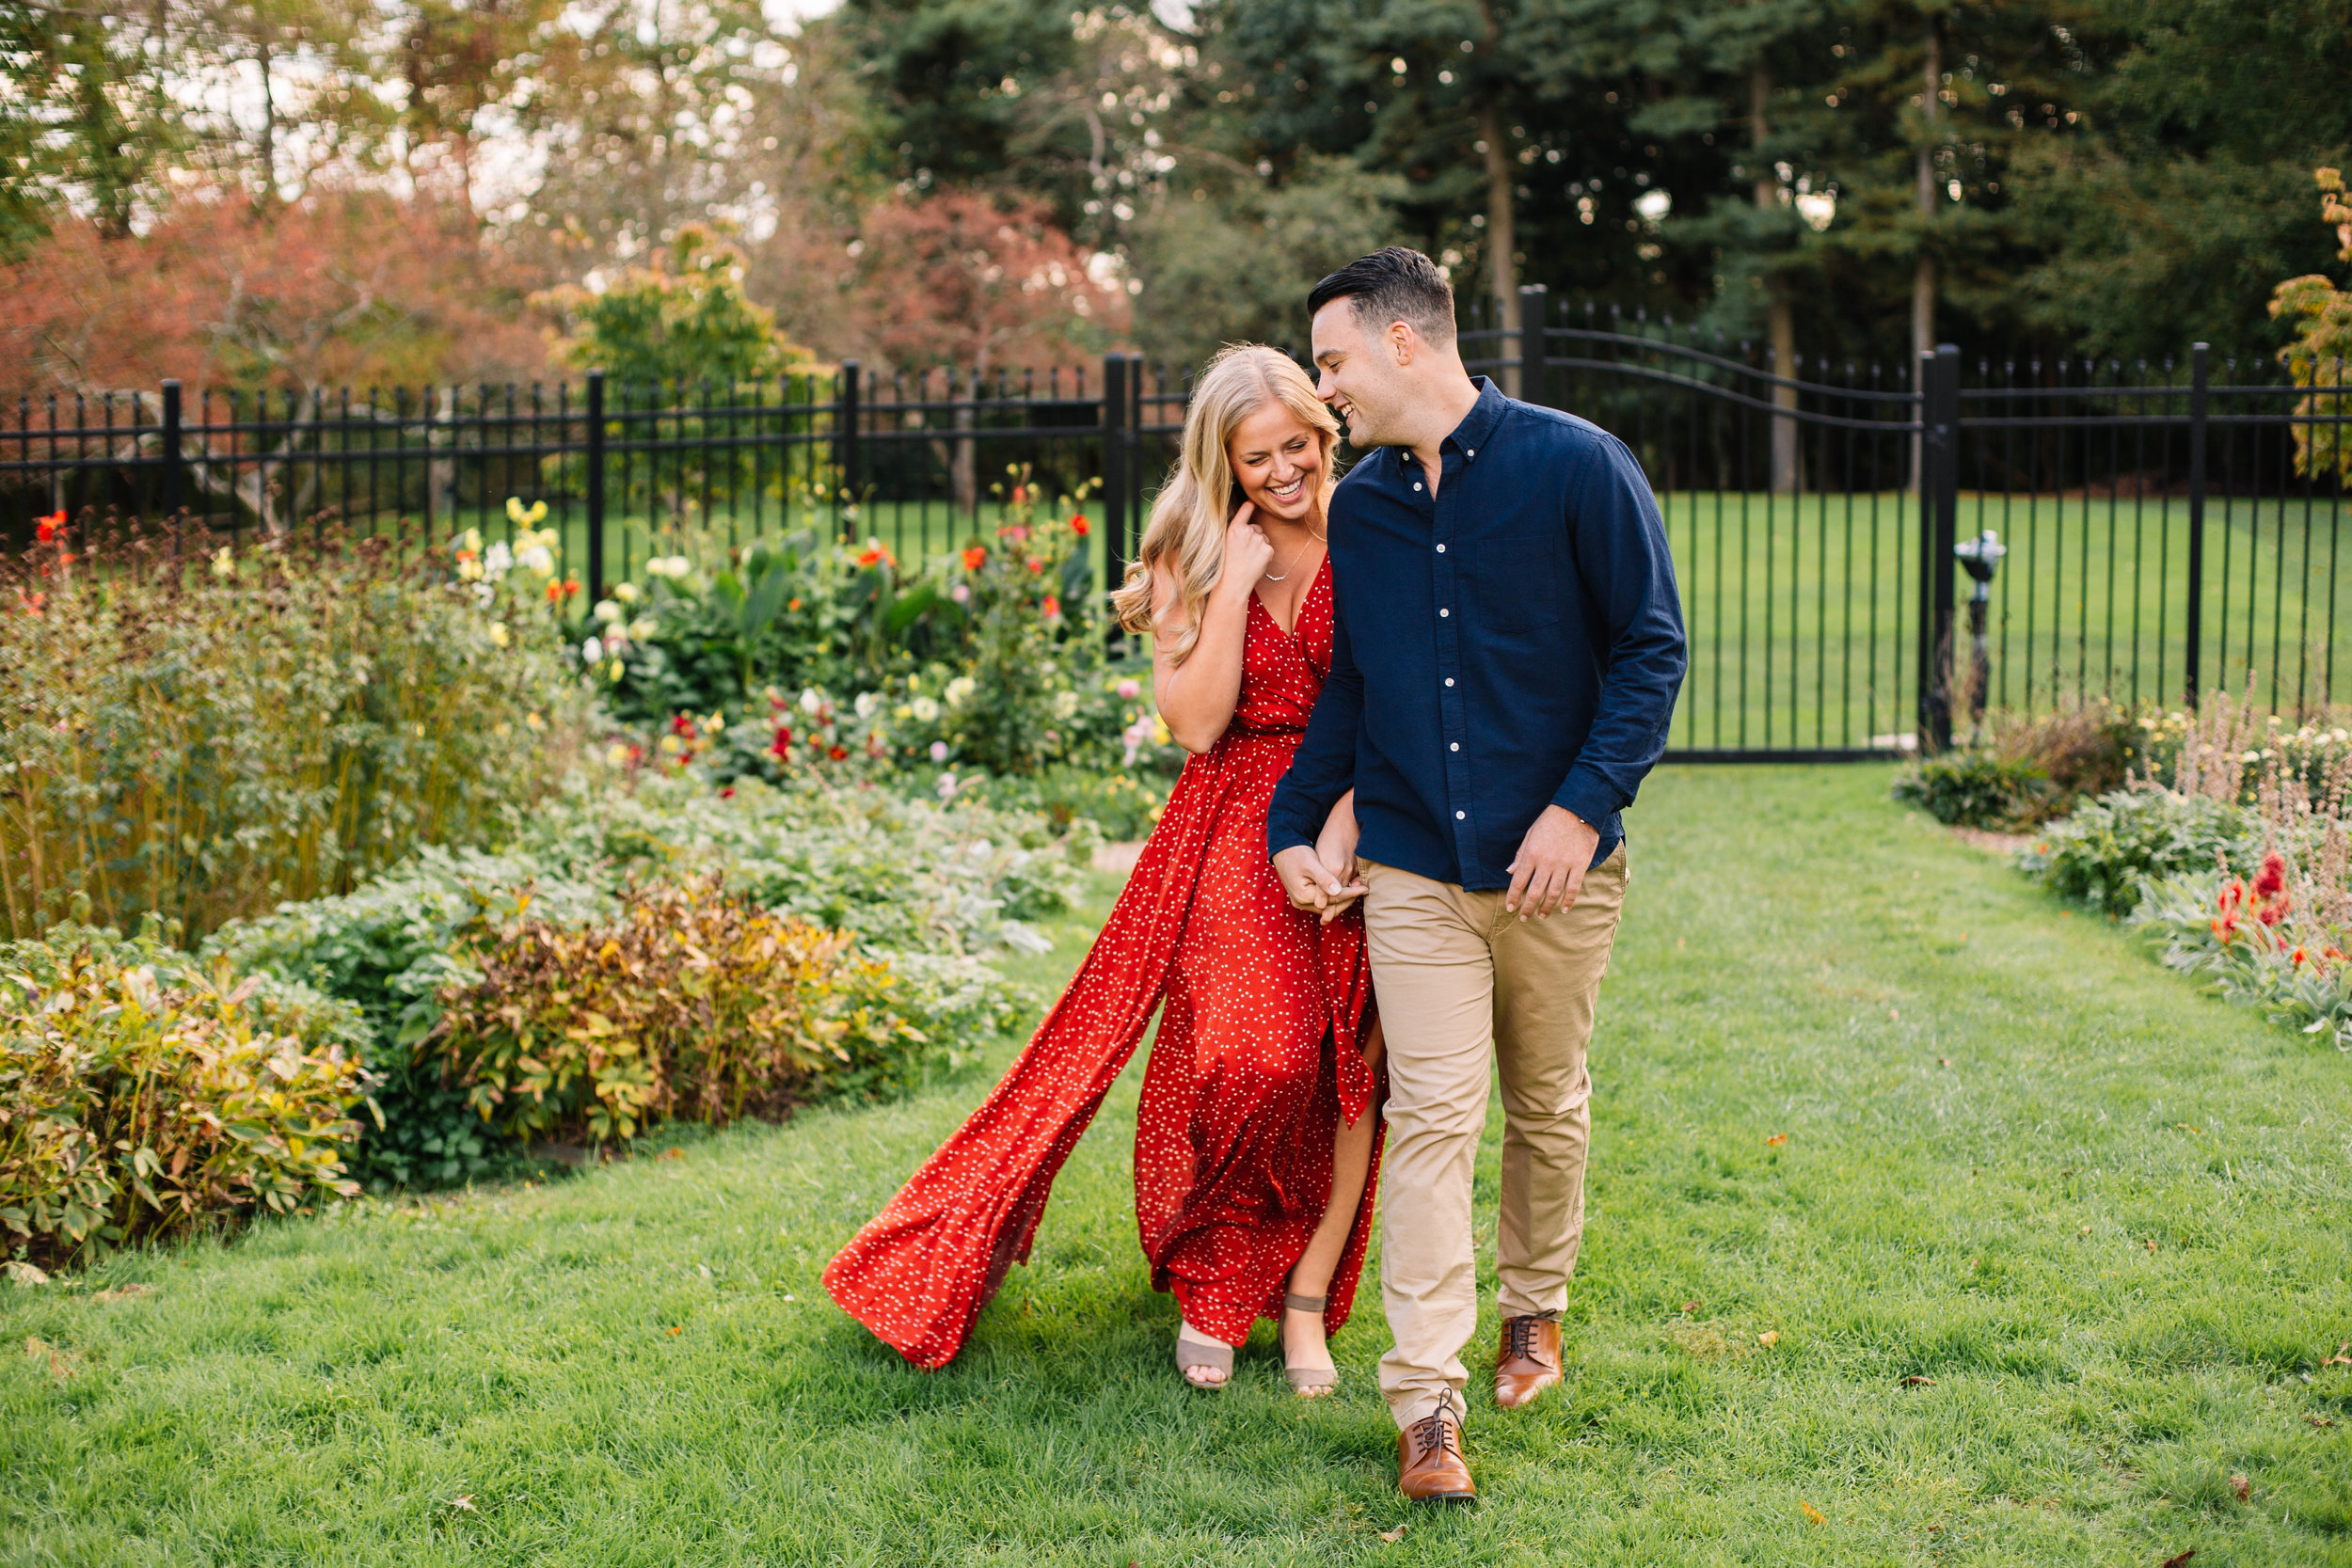 """""""She made the experience so fun"""" - Kristin is absolutely amazing! She captured so many beautiful photos of my fiancé and myself during our engagement session. She made the experience so fun!I cannot wait for our wedding and to see all the special moments she captures there. I would highly recommend her!- Courtney, South Park PA"""